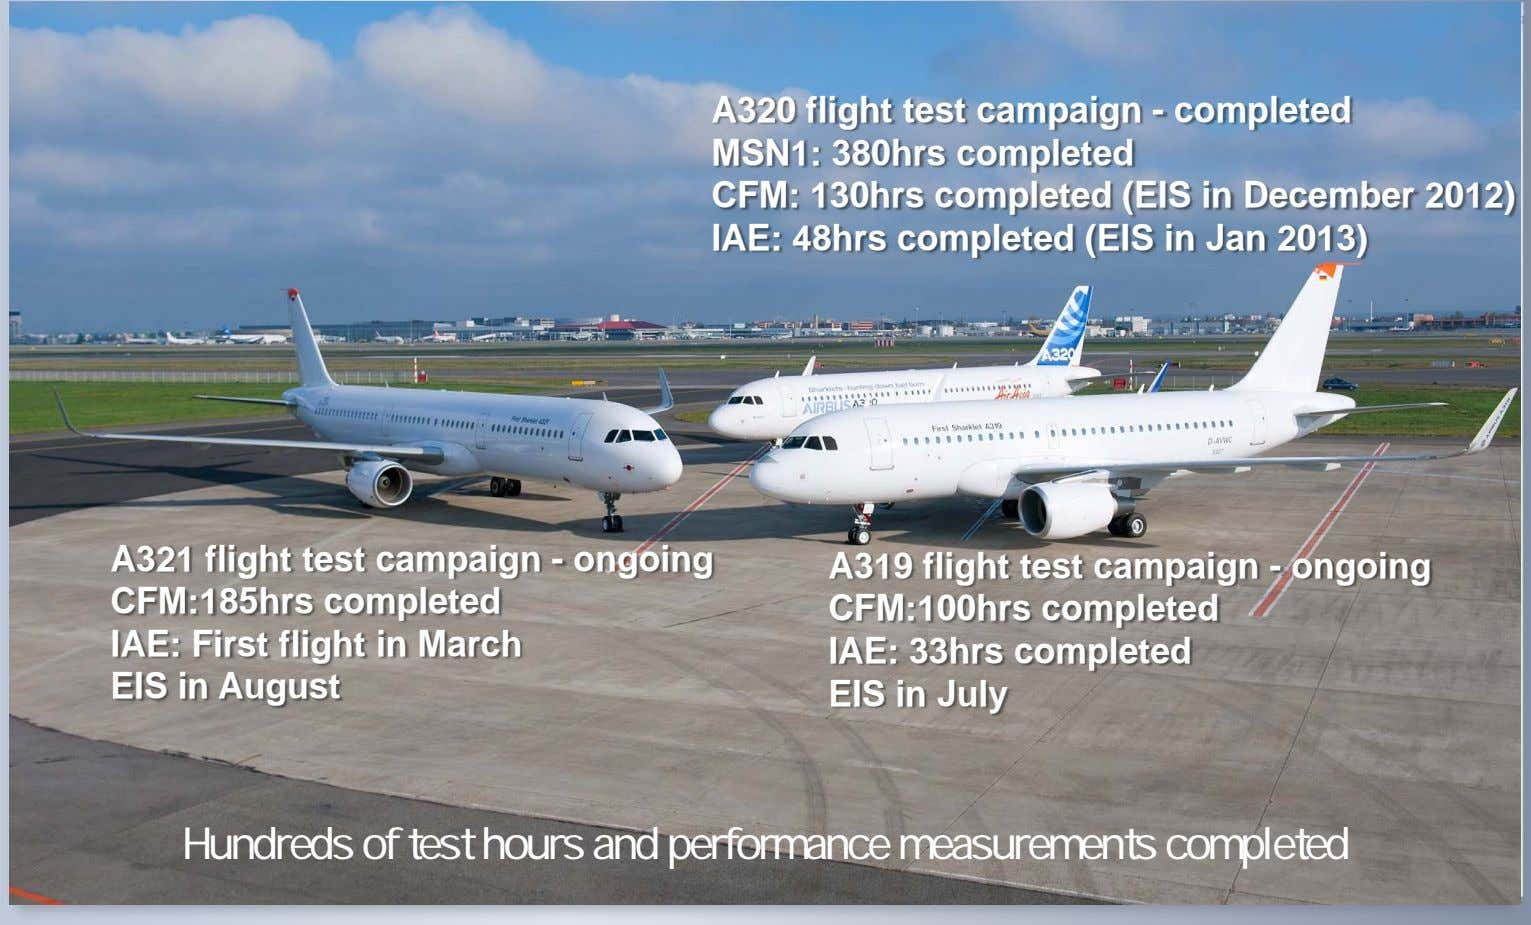 A320 flight test campaign - completed MSN1: 380hrs completed CFM: 130hrs completed (EIS in December